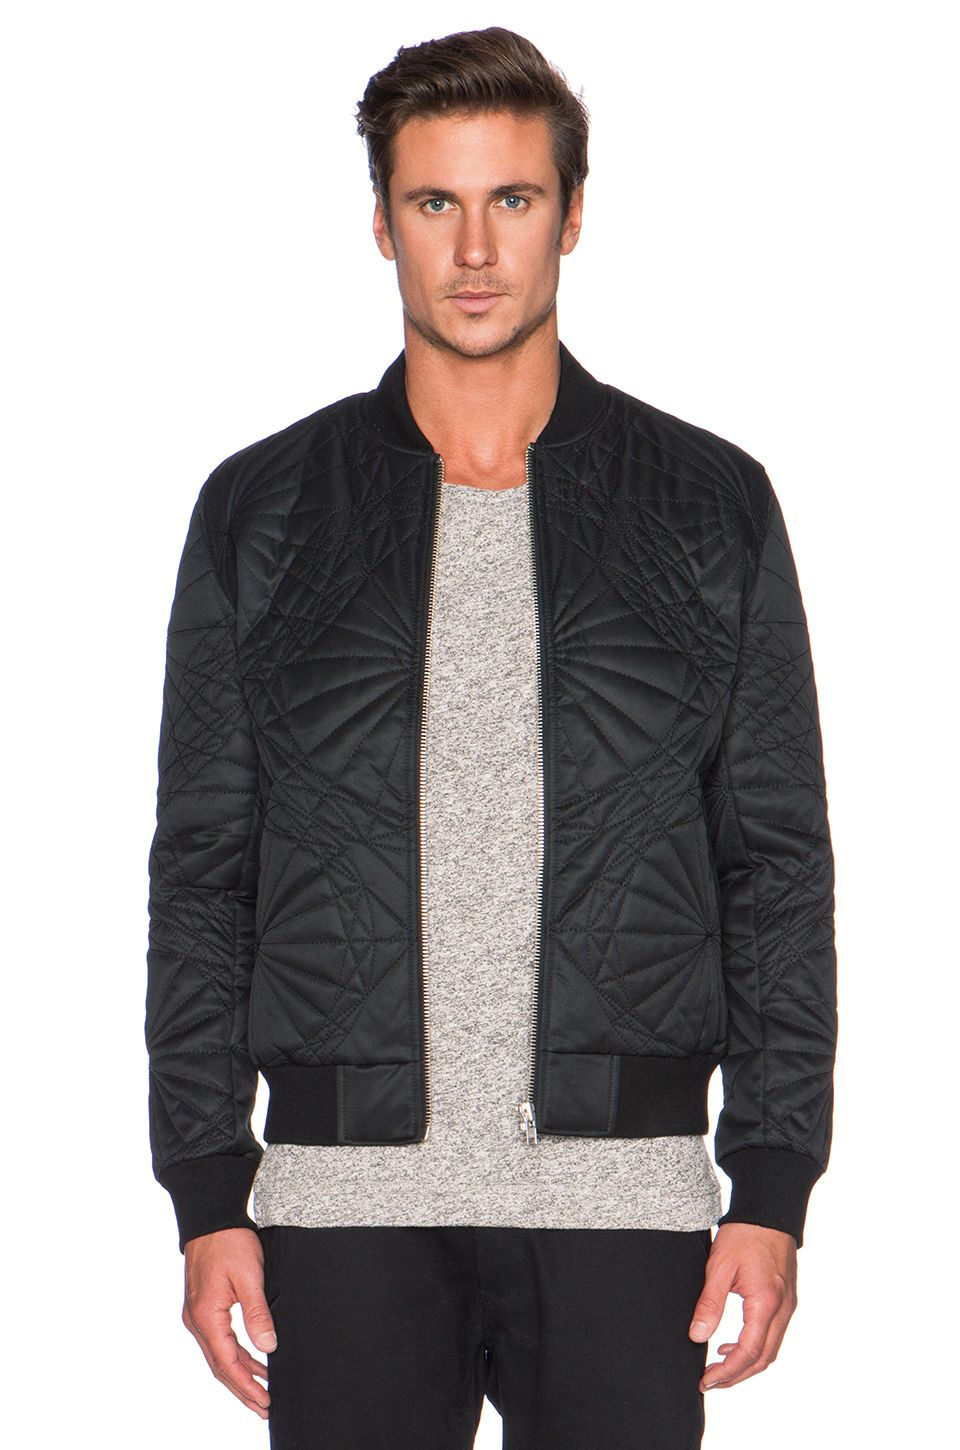 Black Scale Shapes Jacket in Black  2475afb6e61